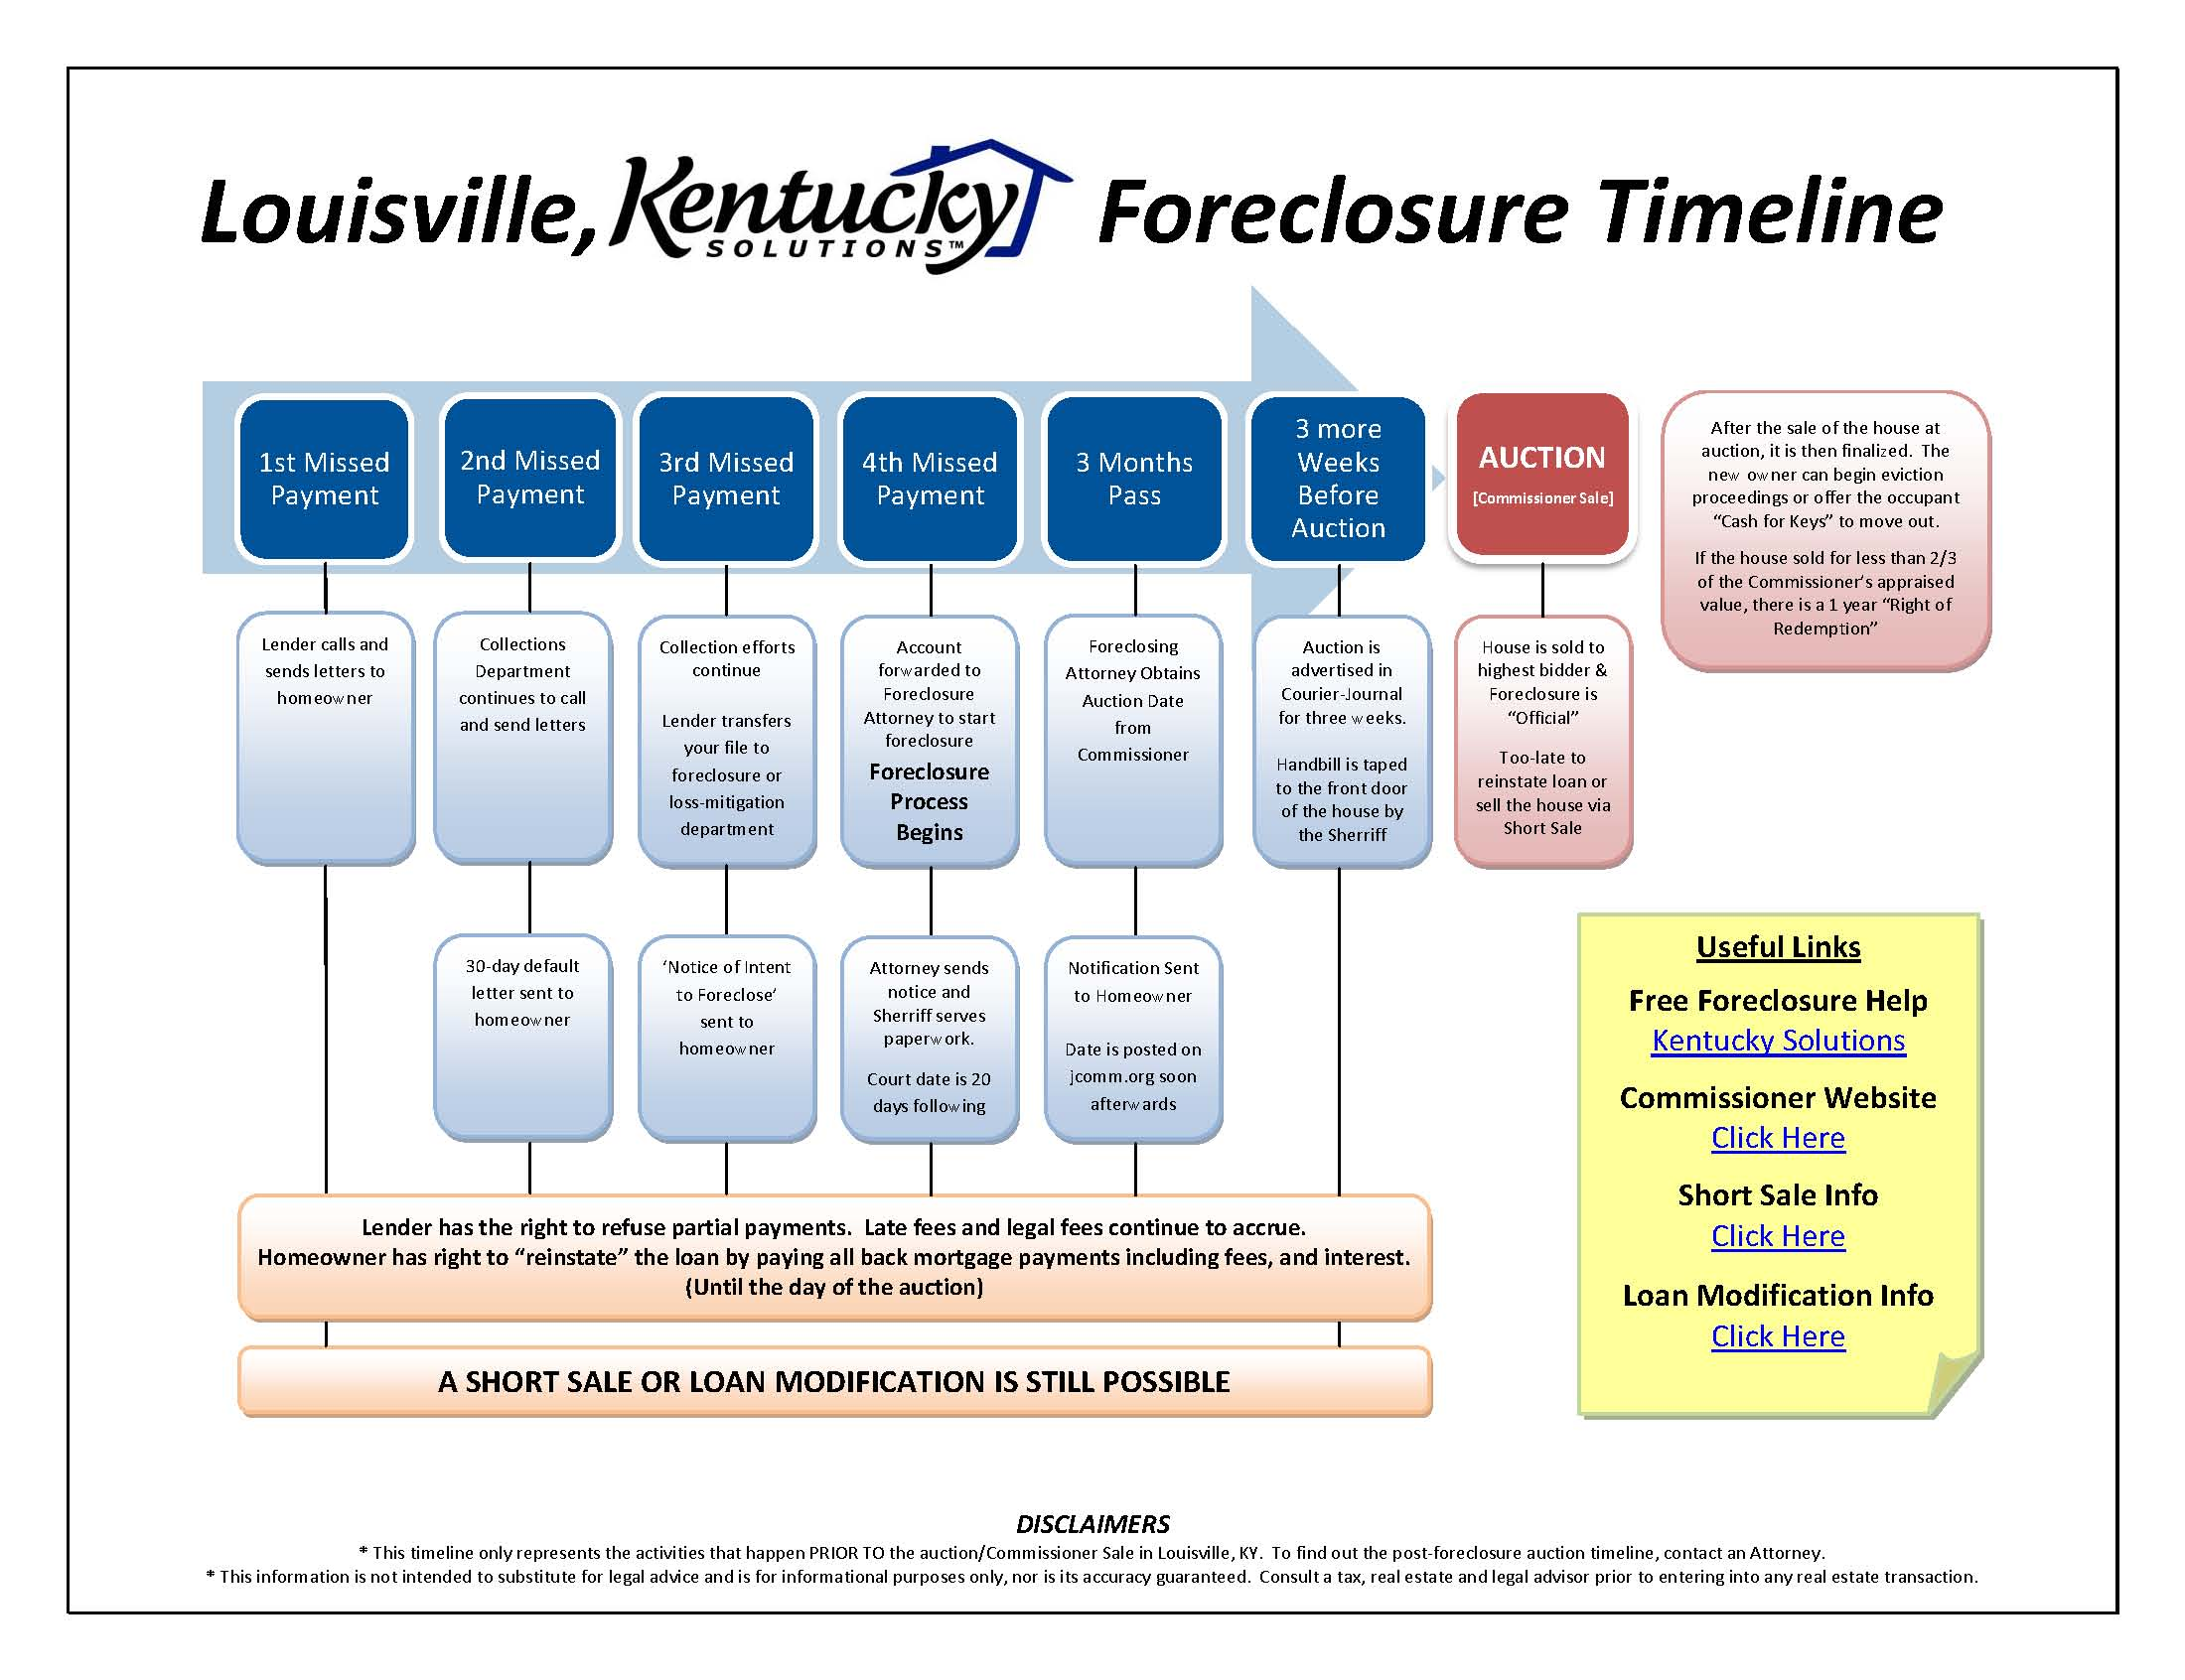 Excellent chart explaining the process of foreclosure in Kentucky